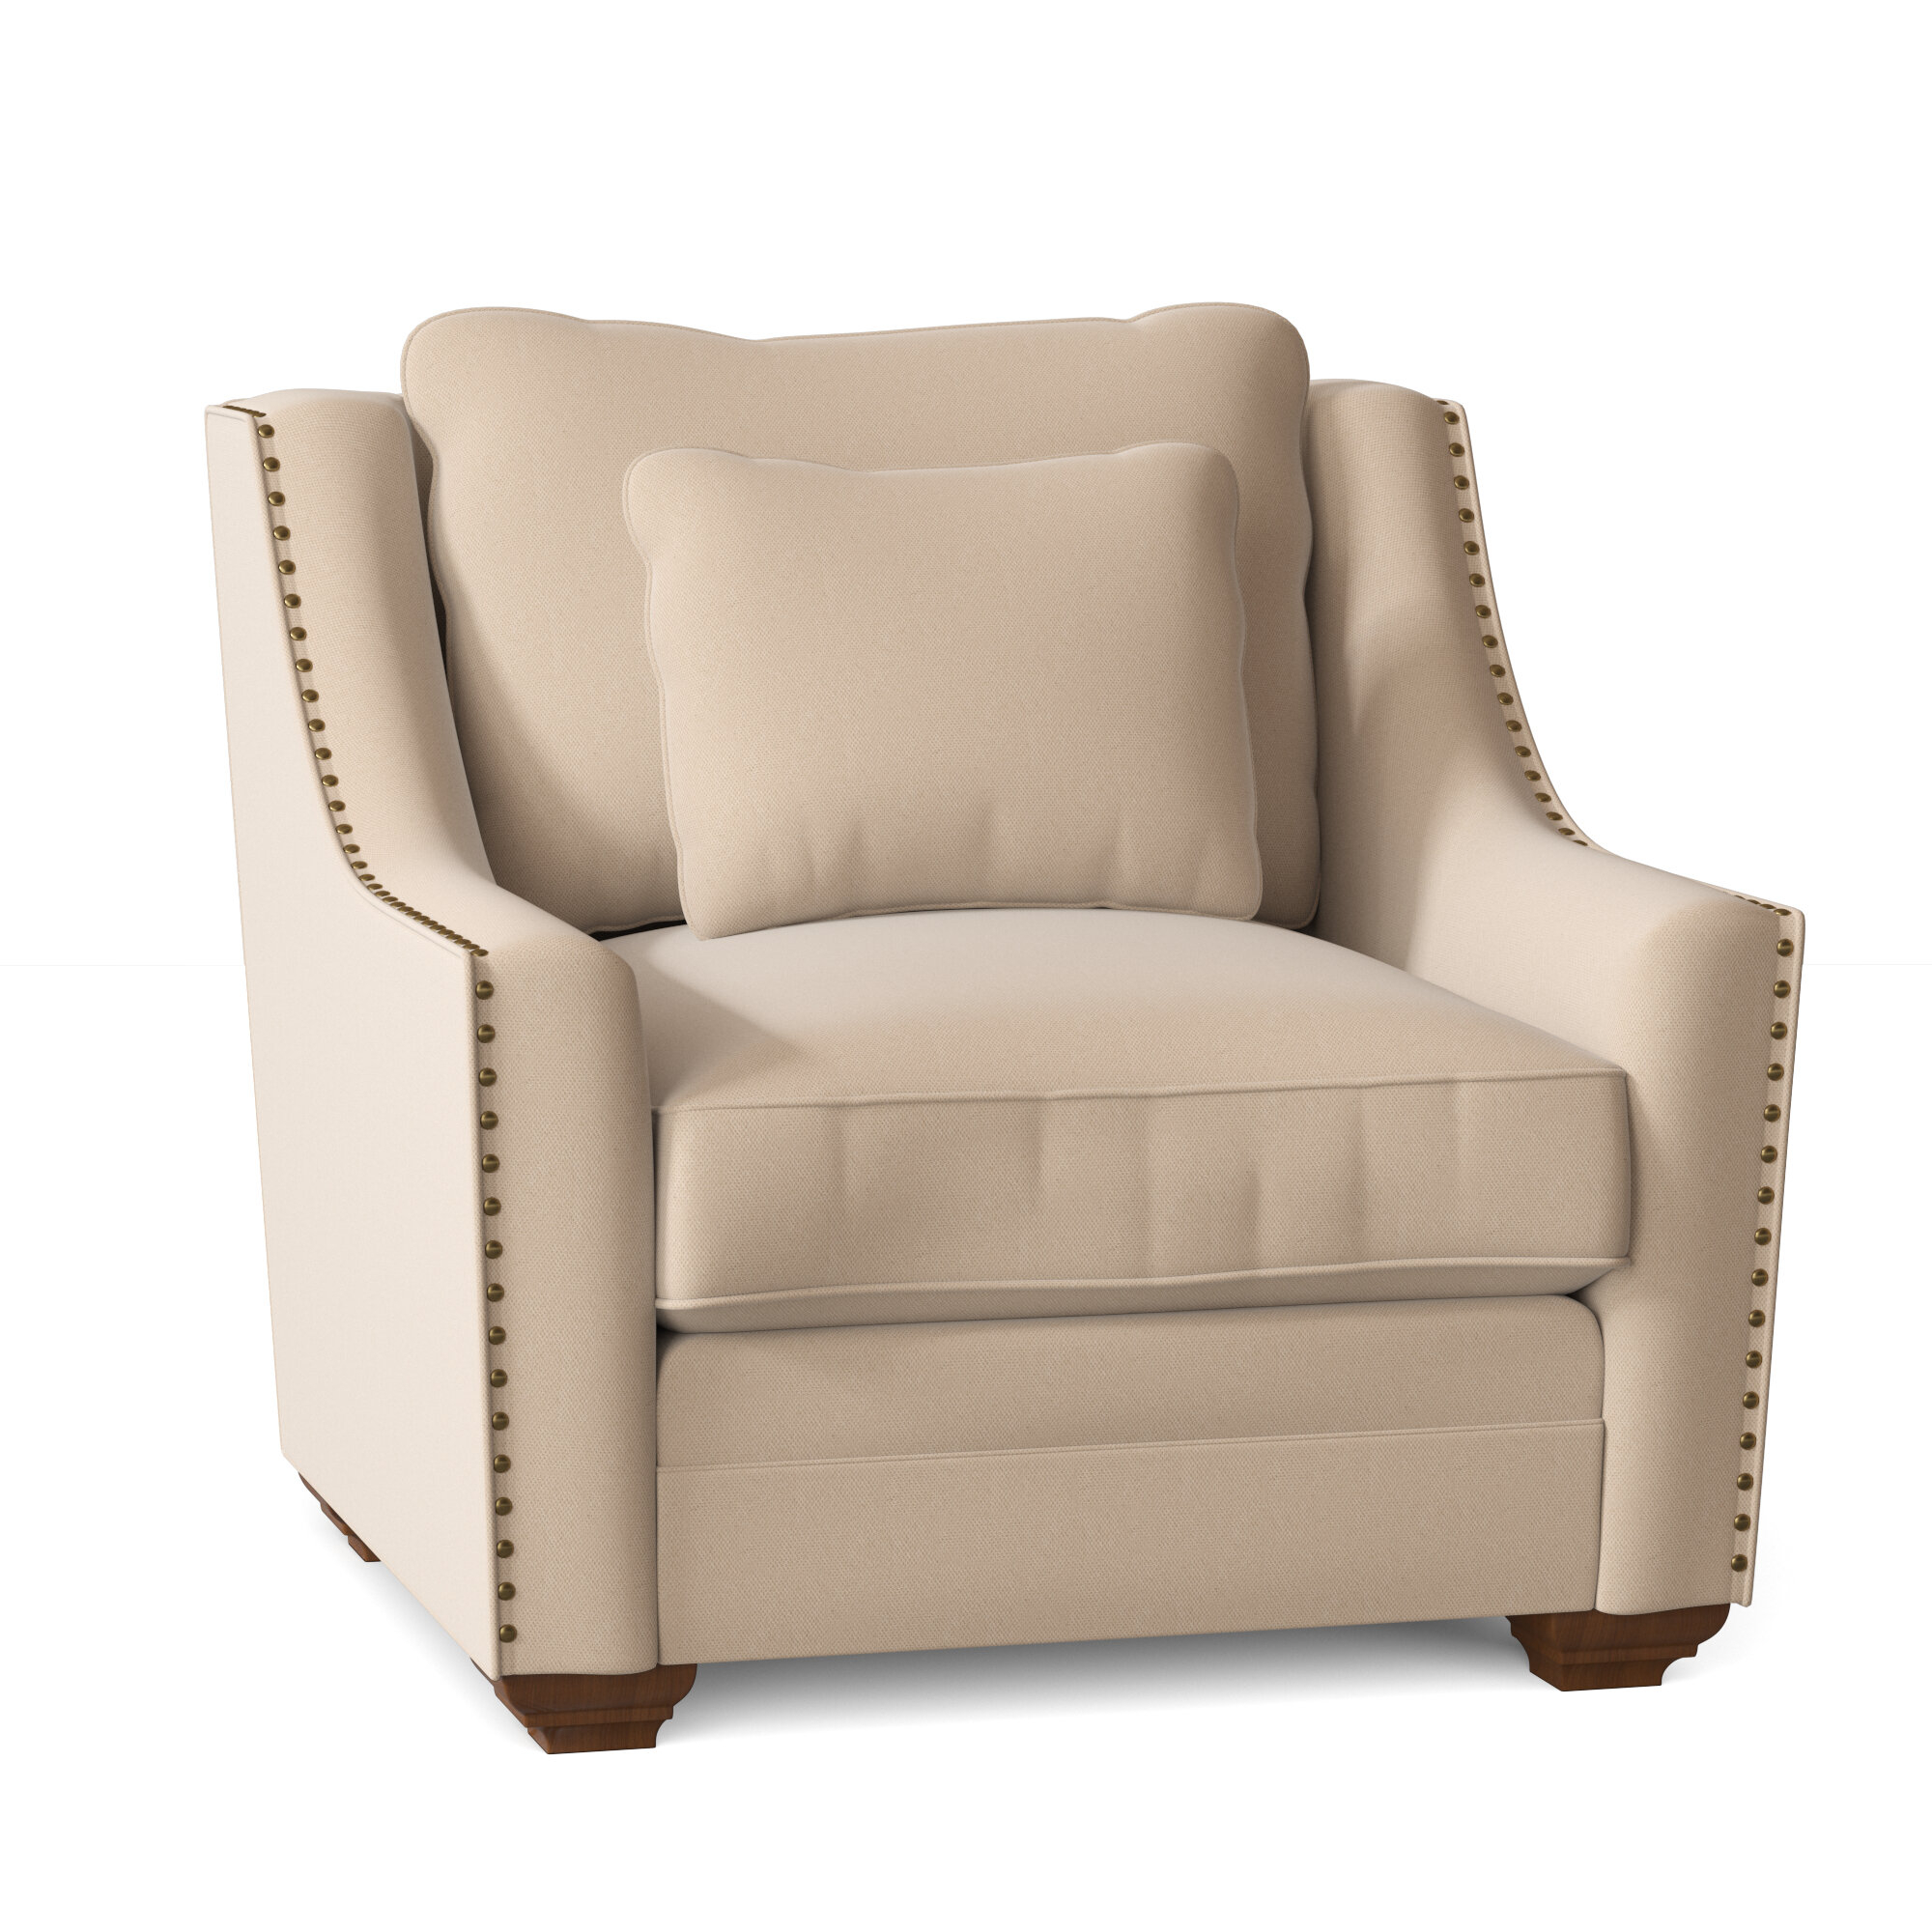 Waltz Armchair Throughout Louisburg Armchairs (View 15 of 15)